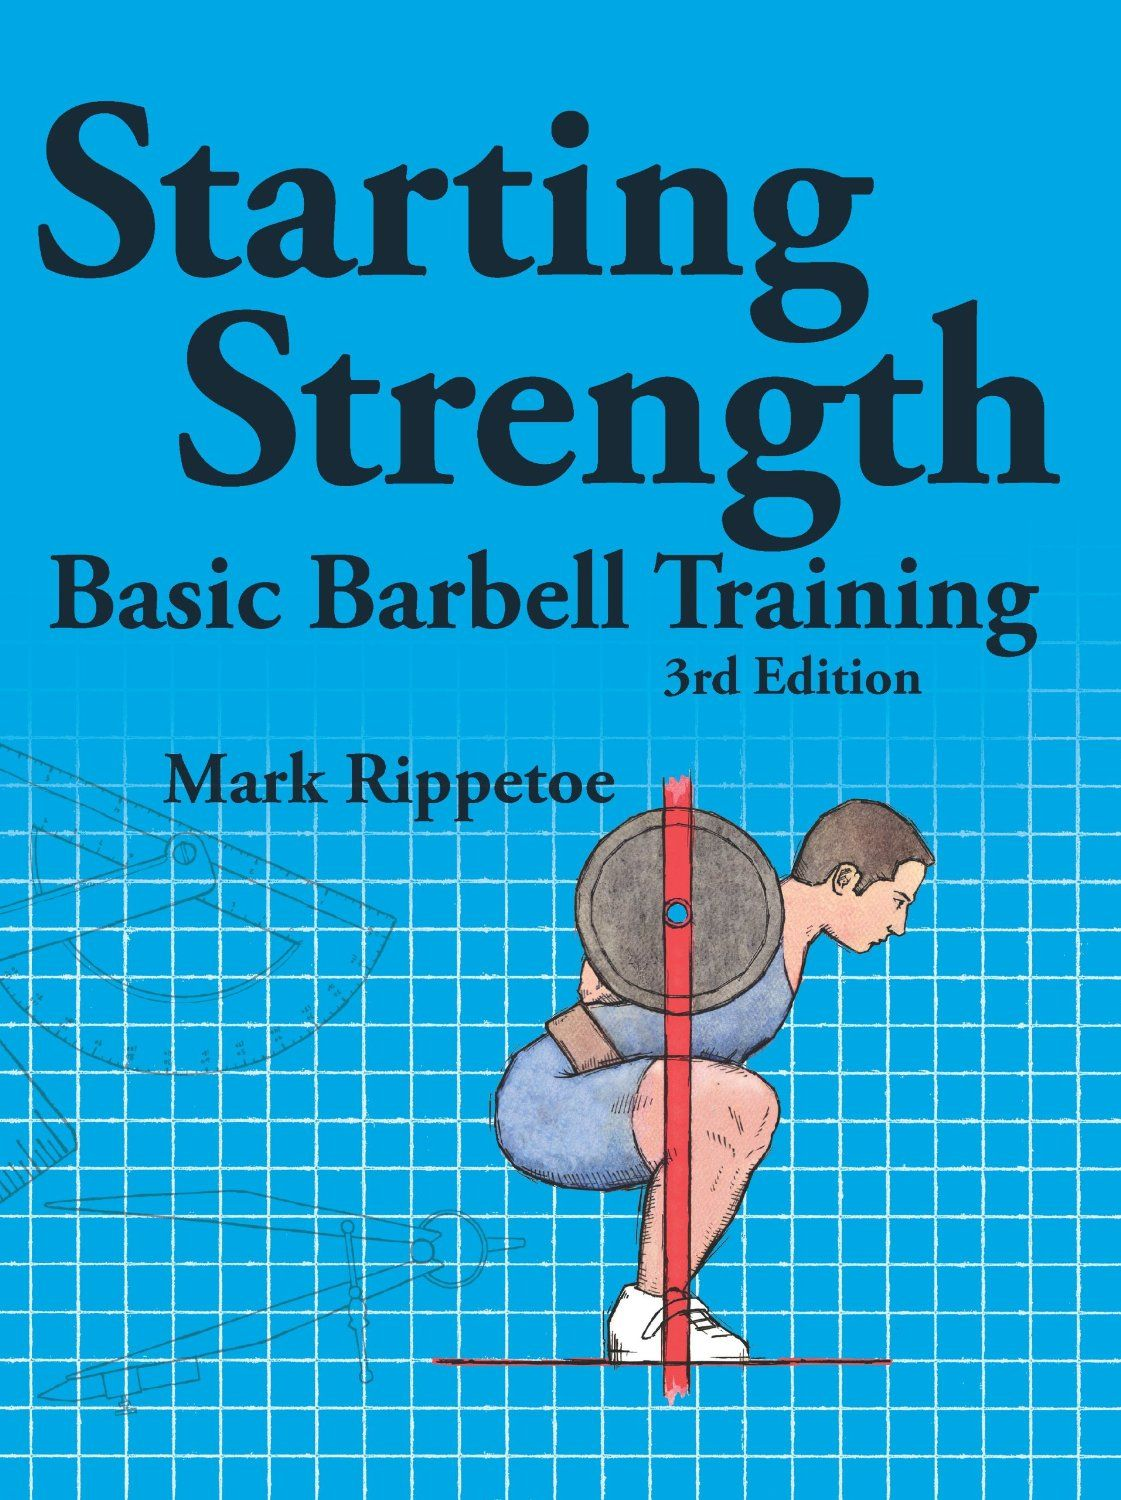 Starting Strength has been called the best and most useful of fitness books. The second edition, Starting Strength: Basic Barbell Training, sold over 80,000 copies in a competitive global market for fitness education.